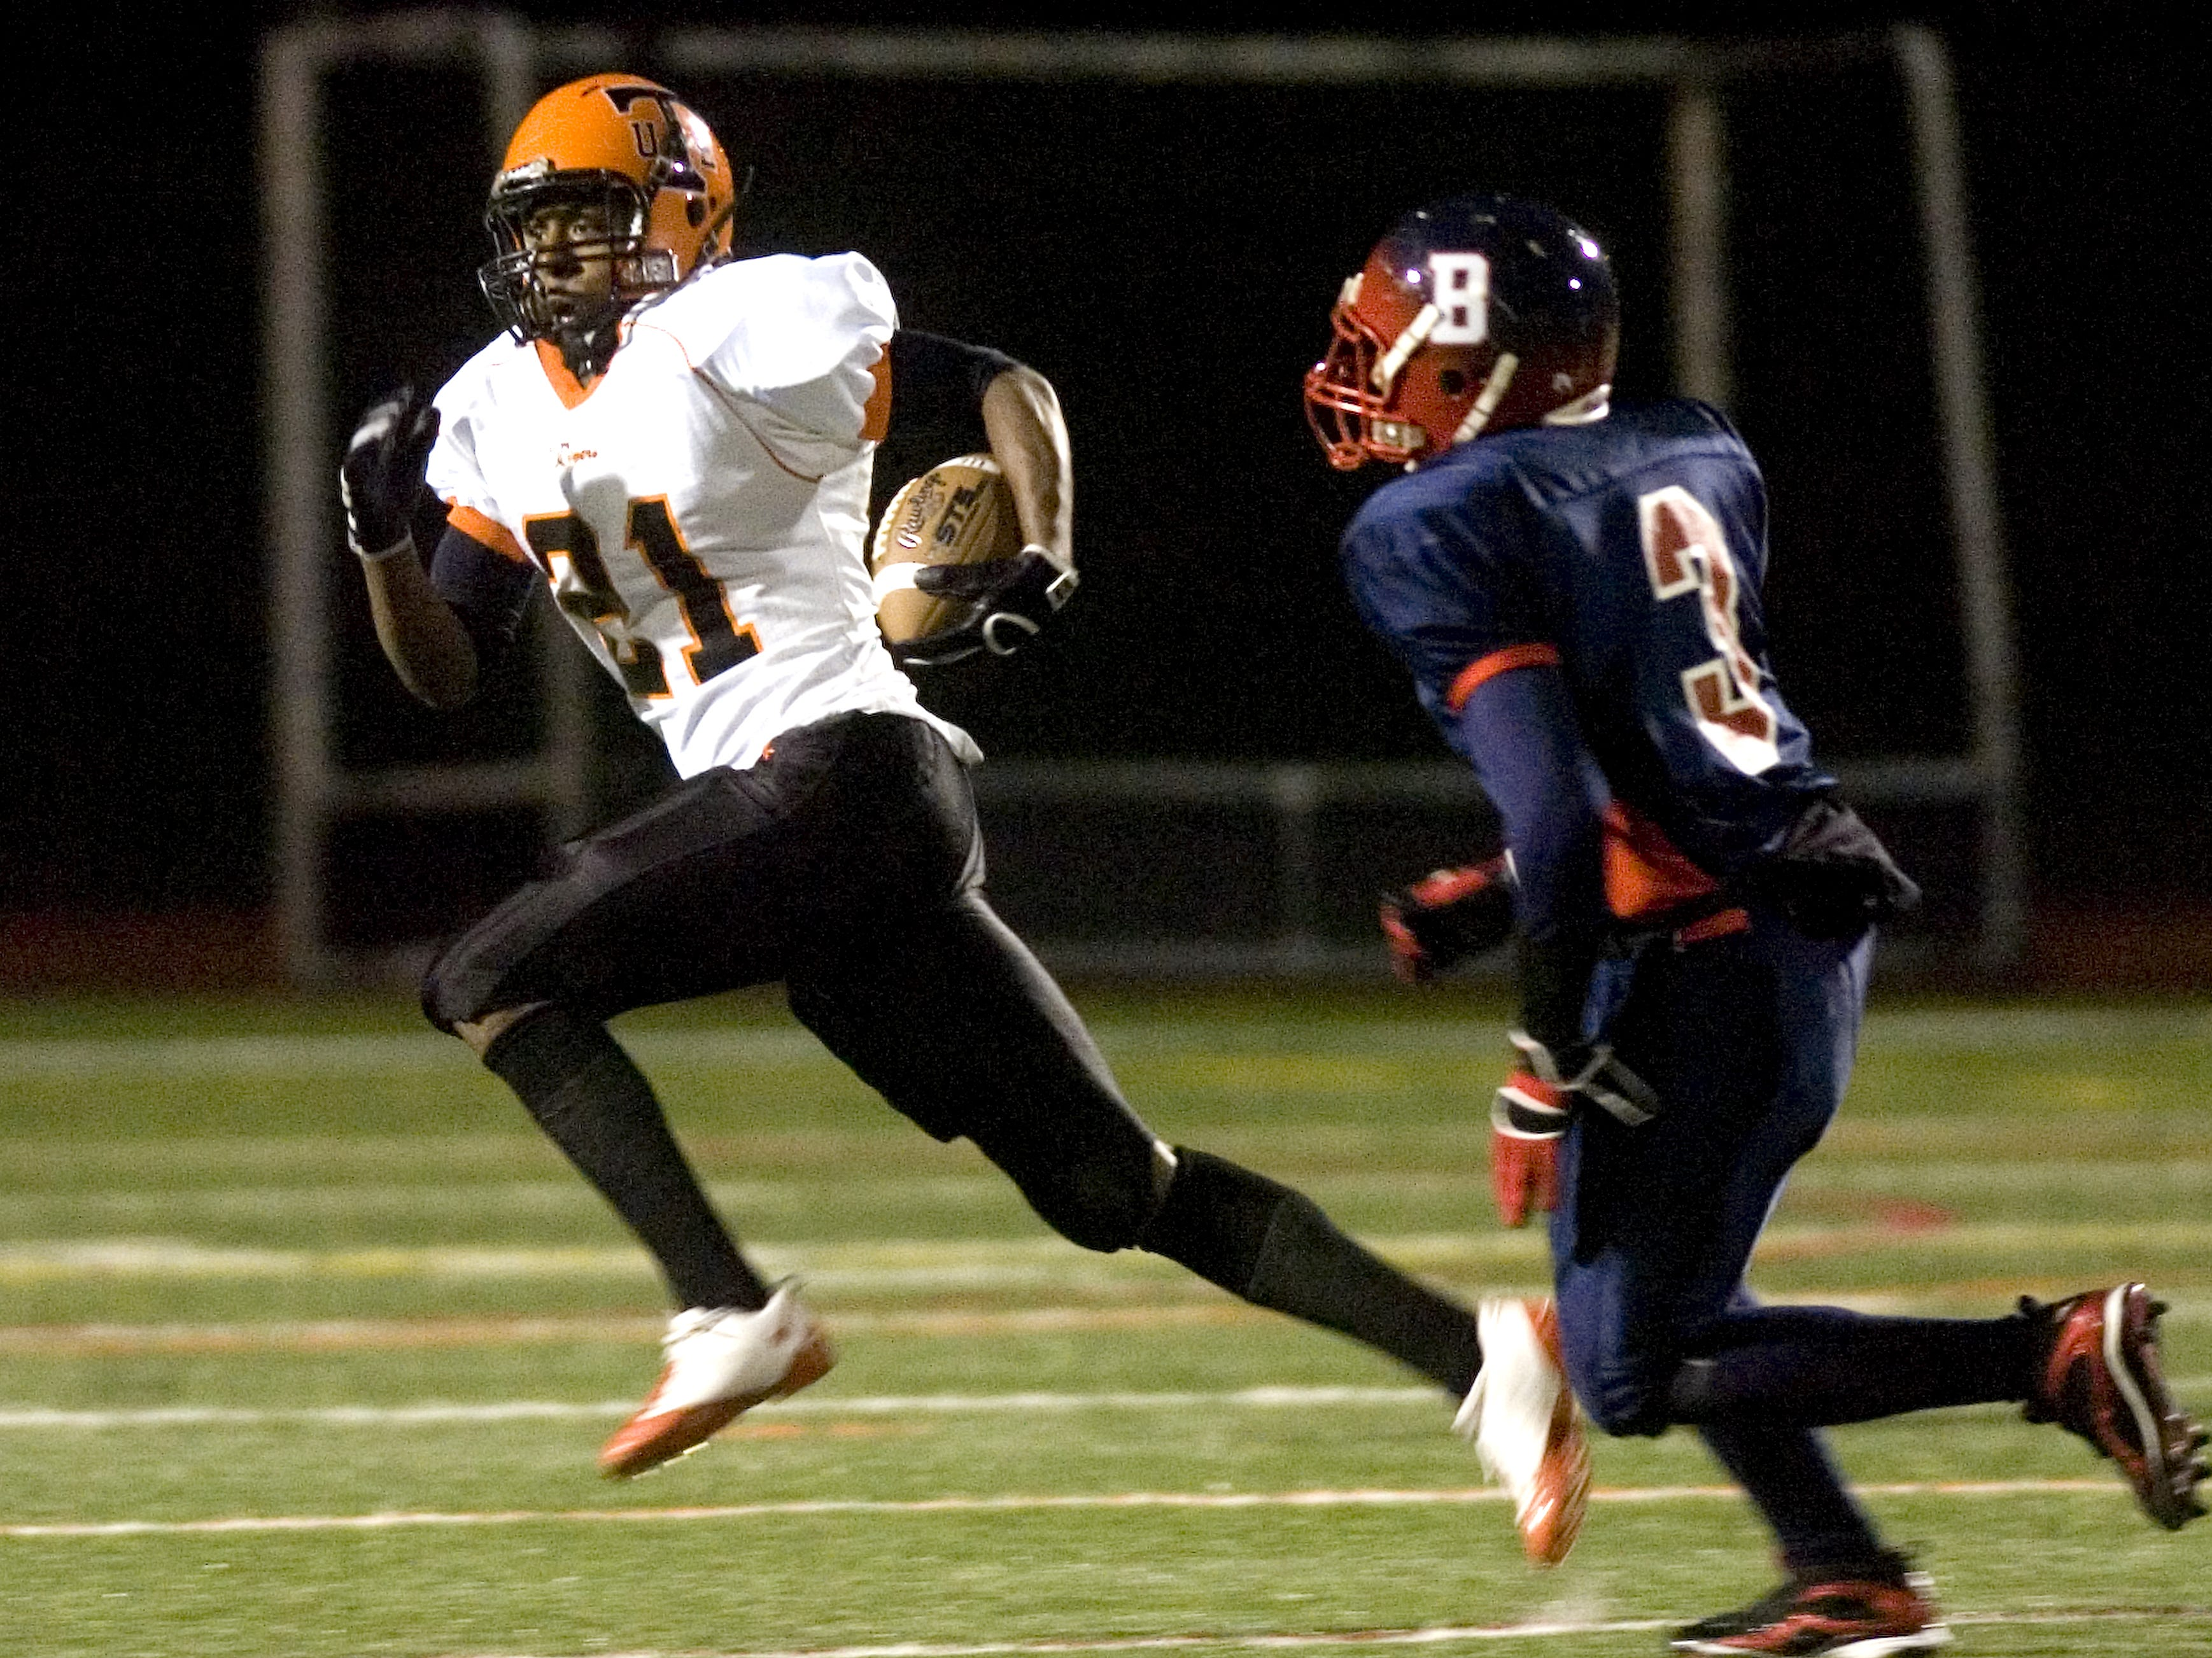 Union-Endicott's Jordan Thomas, left, goes to the outside as he tries to evade Binghamton's Delroy Young in the third quarter of a 2009 game at Dick Hoover Stadium in Vestal.